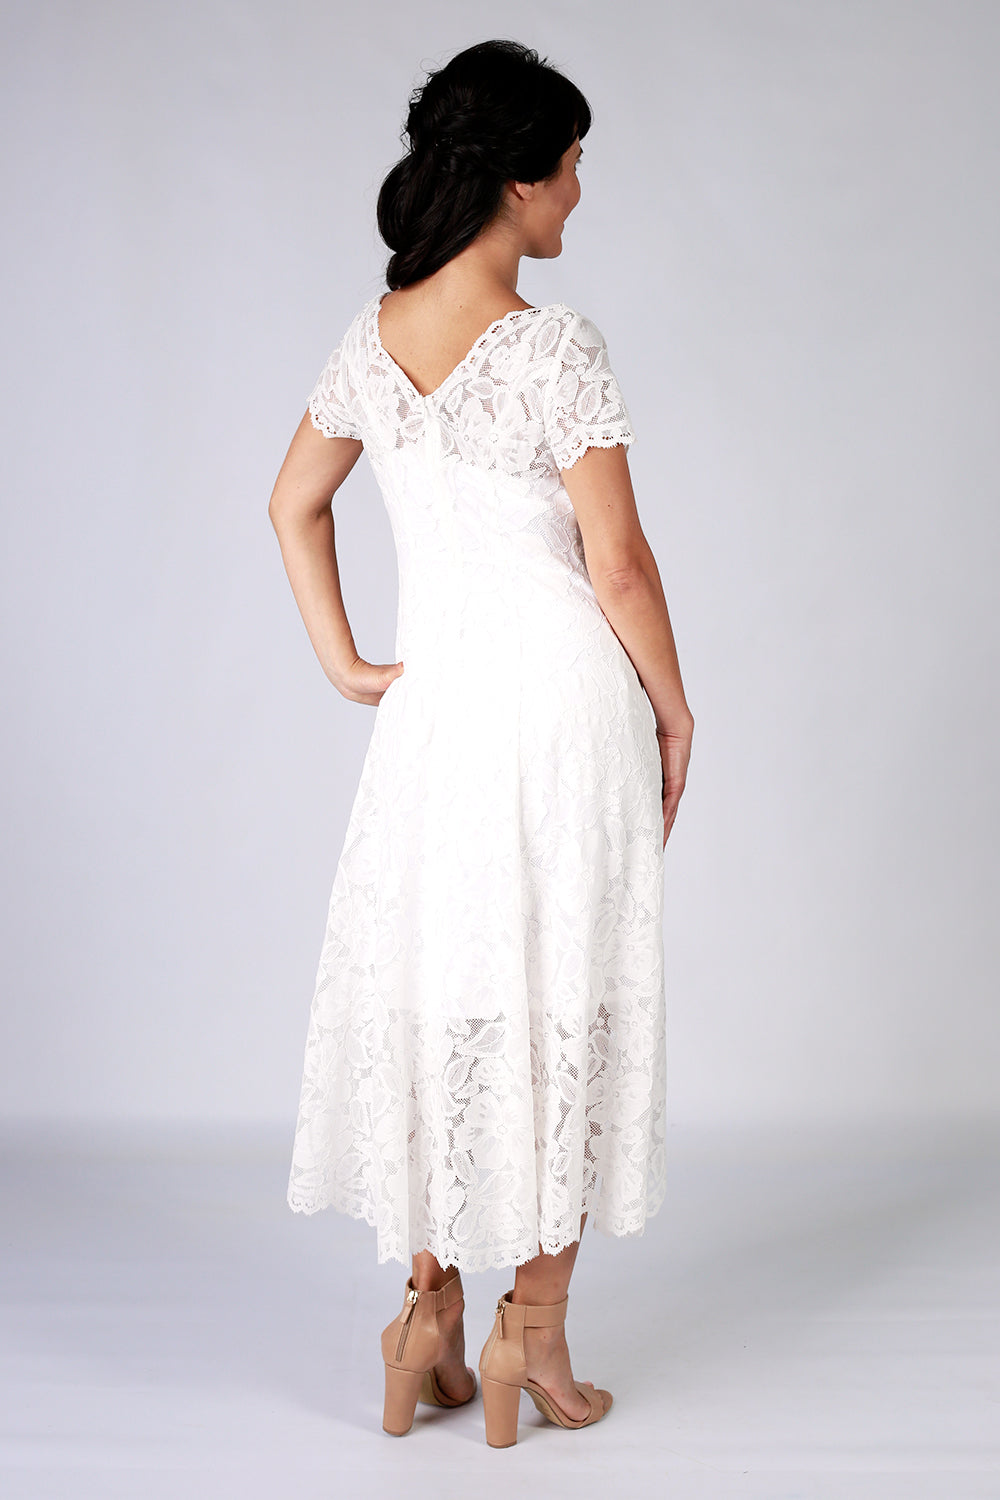 Moon Flower Dress | Lace Dress | New Zealand Fashion Designer | Annah Stretton | Wedding Dress | Wedding Dress NZ | Affordable Designer Dresses | Modern Wedding Dress | Tea Length Dress